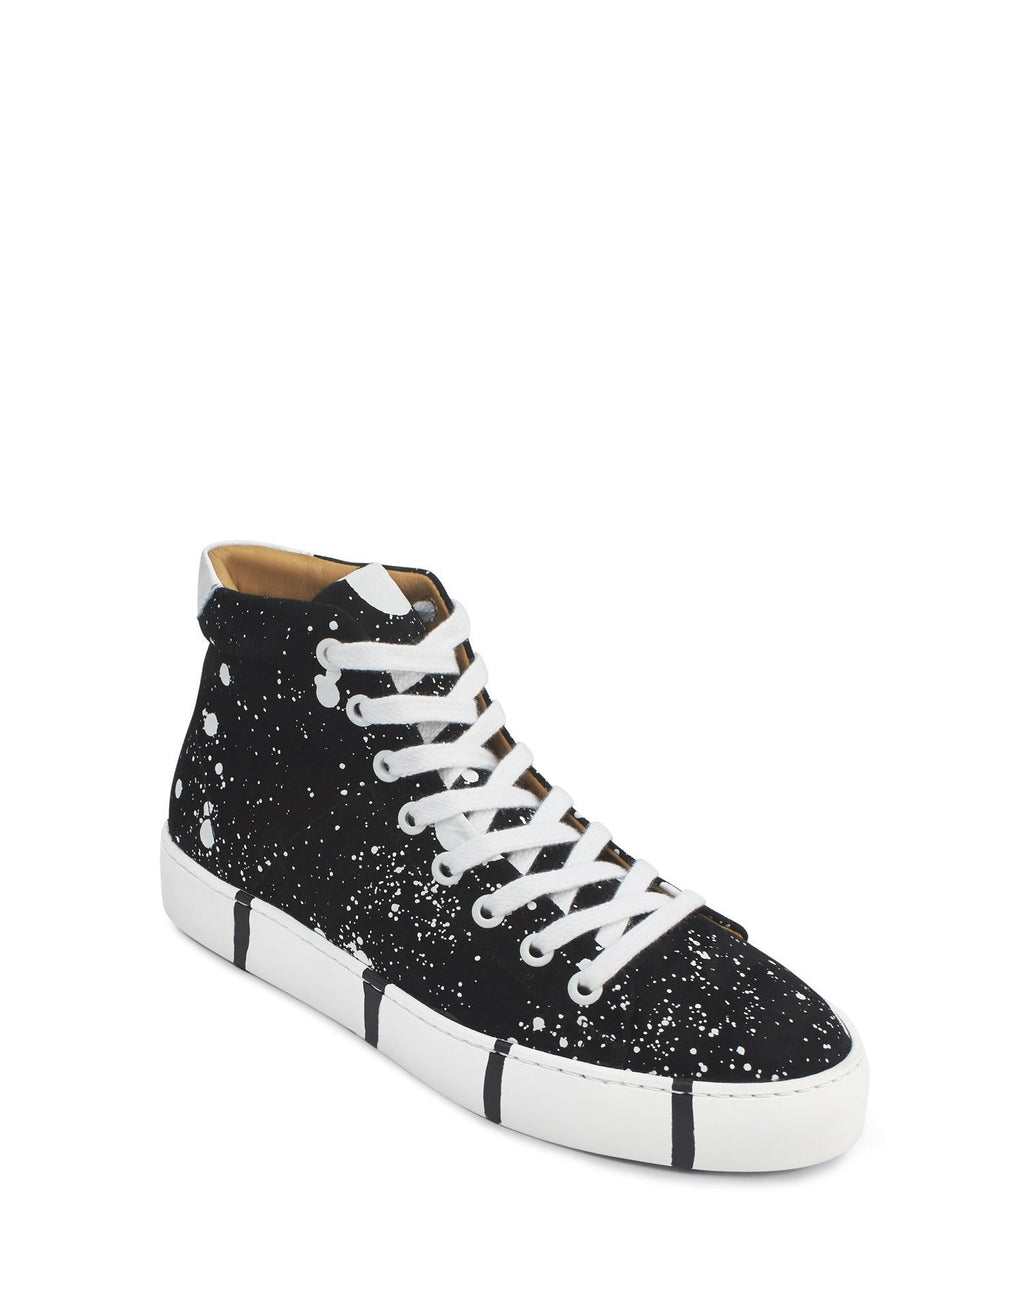 Georgina Goodman black and white splash sneakers, art to wear sneakers in suede with recycled soles.